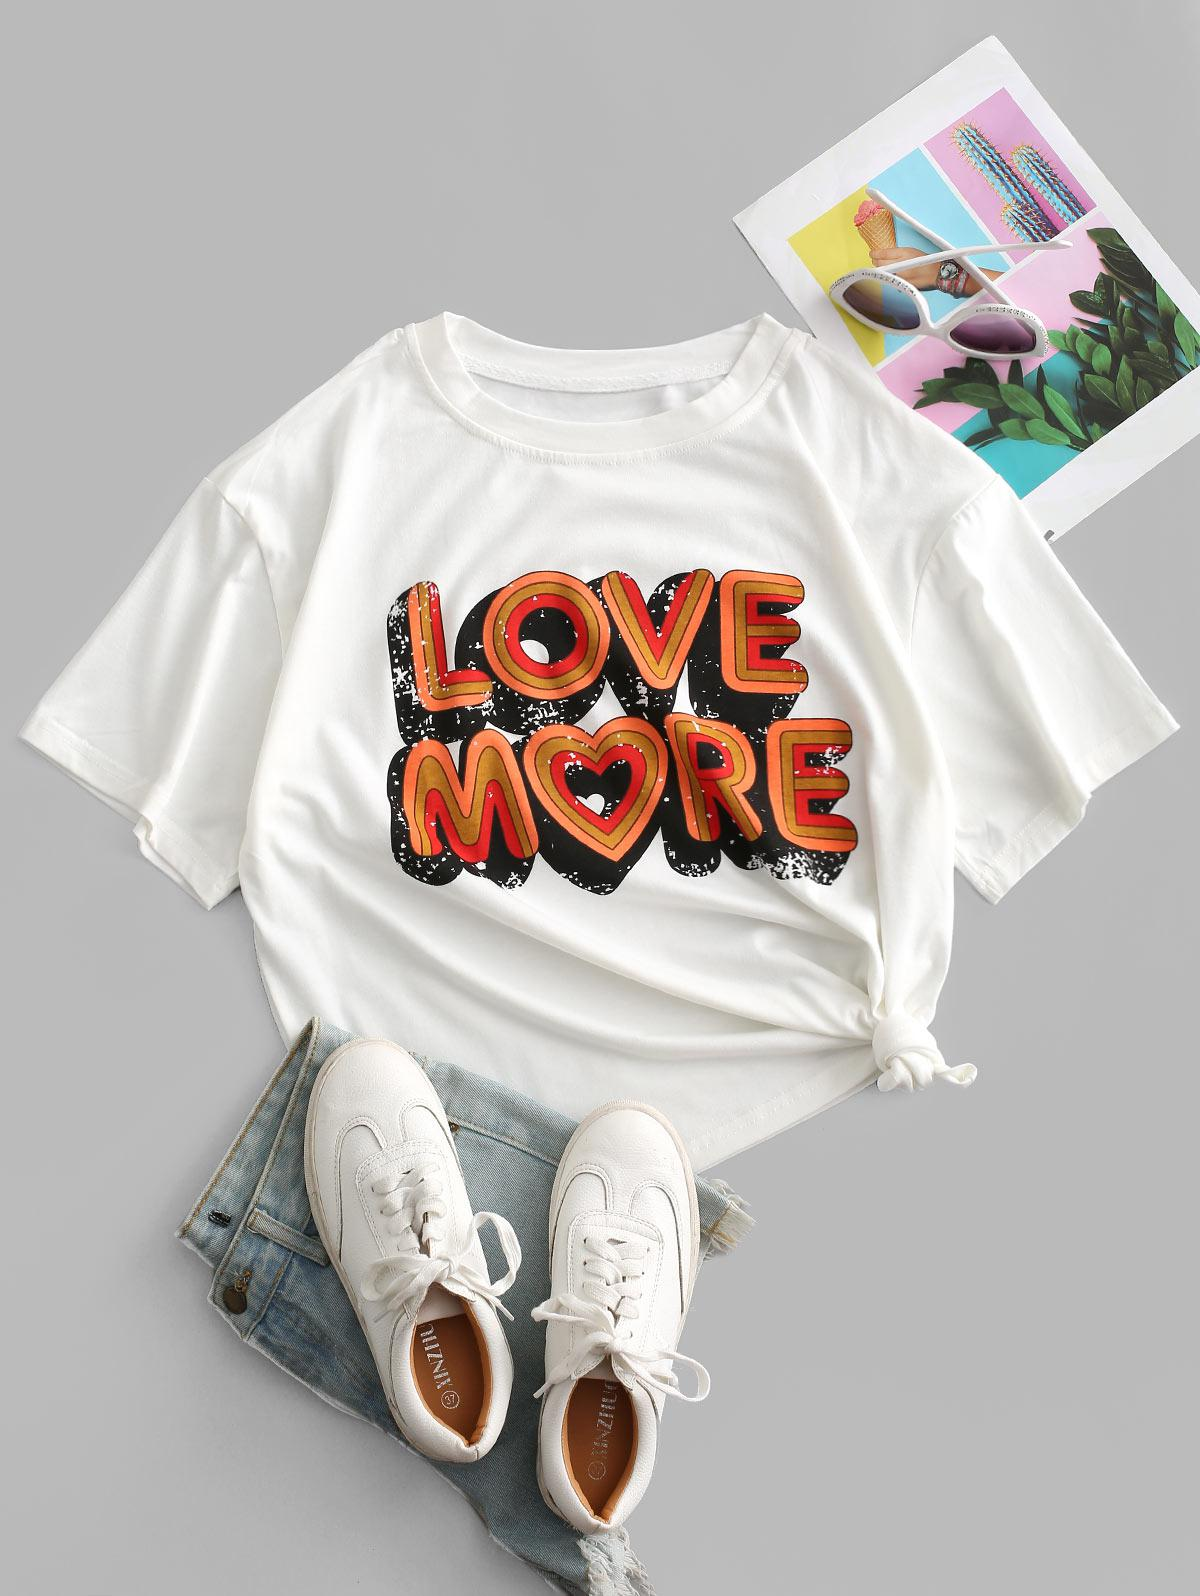 Oversize More Graphic Tee